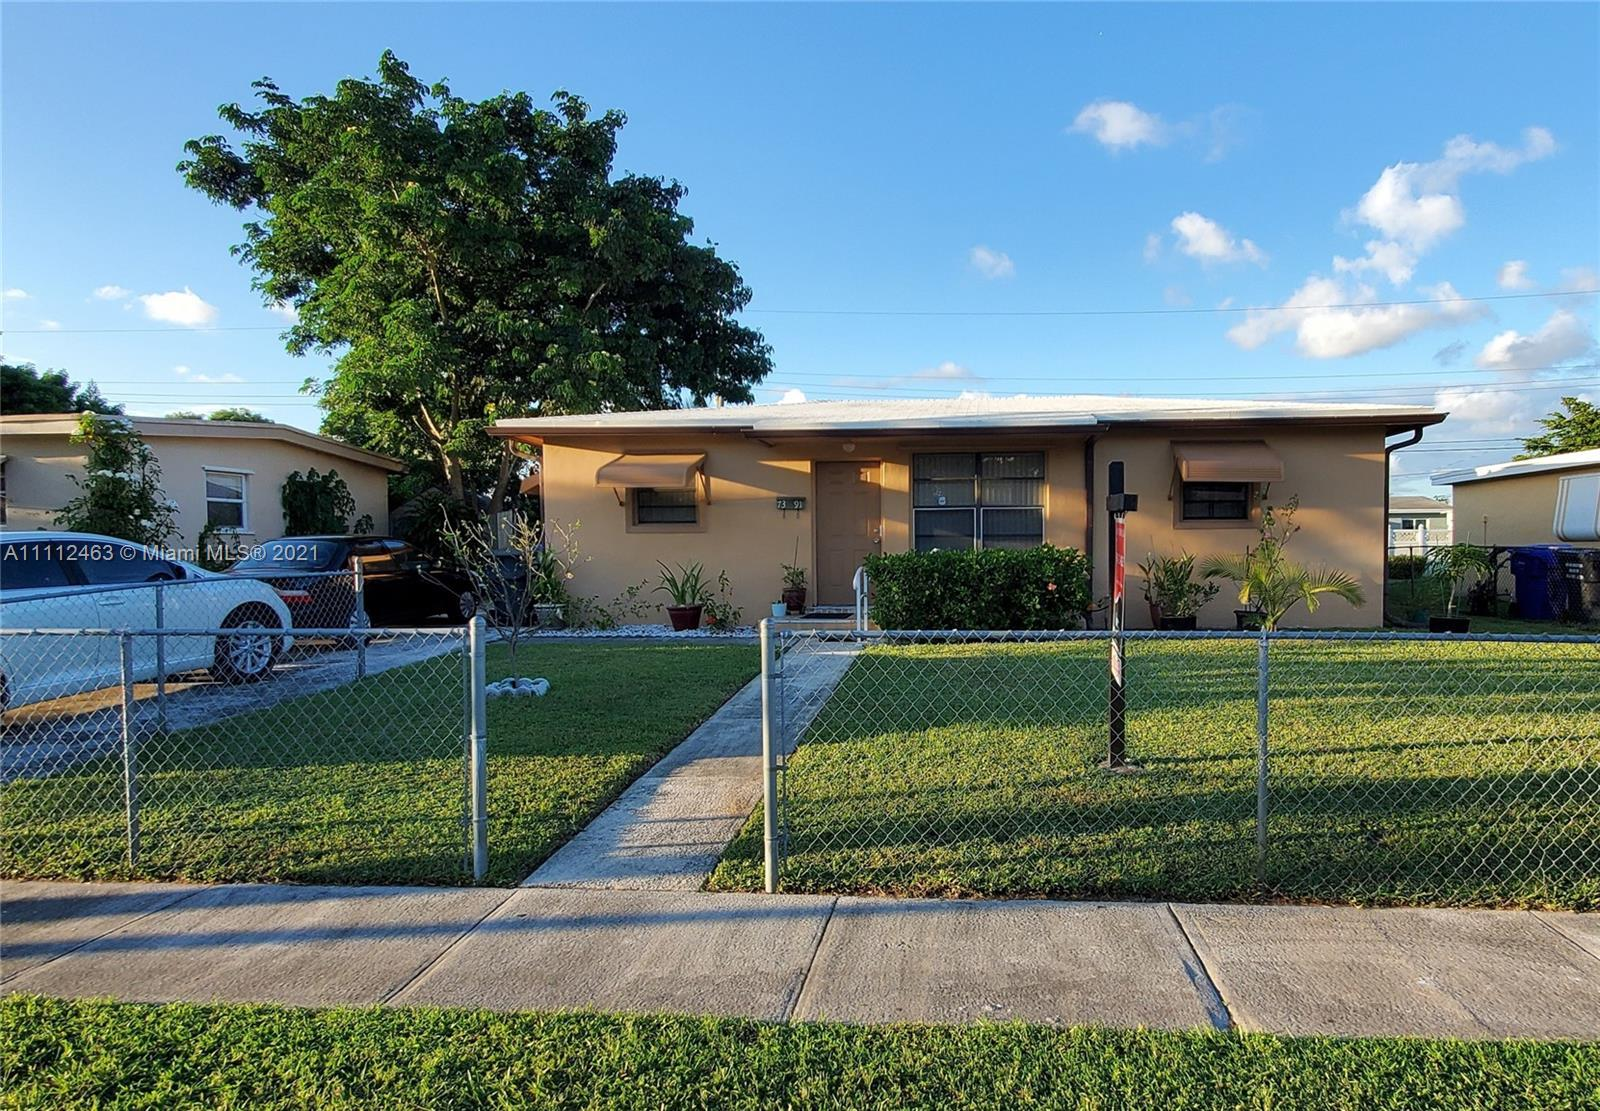 No HOA for this charming home with a huge backyard that's great for parties or a BBQ and even has a